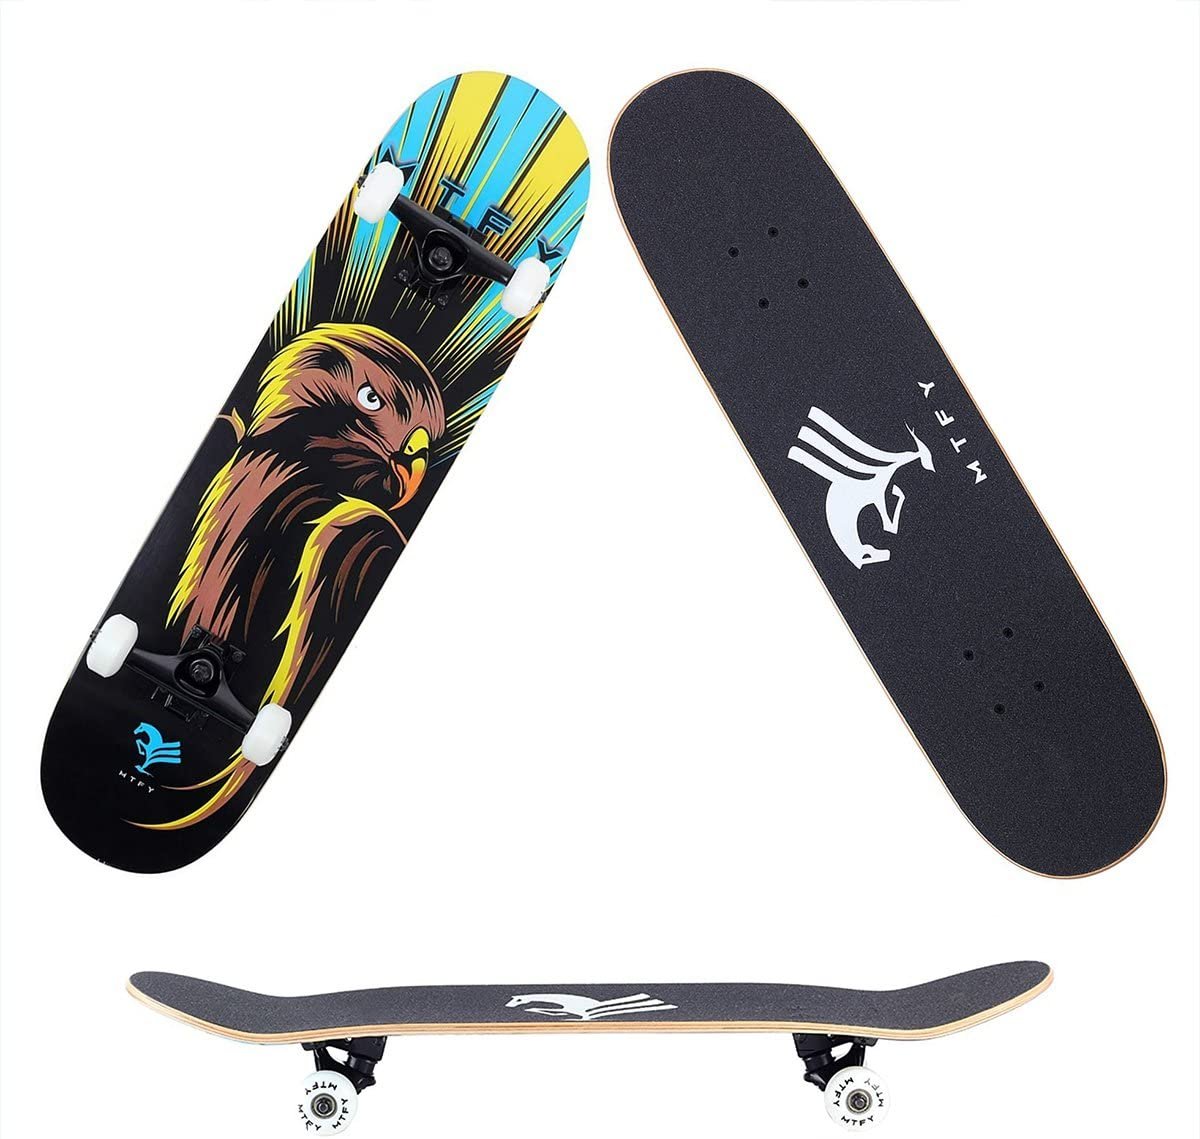 MTFY Skateboards Canadian Maple Wood 31 Pro Long Boards Skateboard Double Kick Concave Cruiser Skateboard